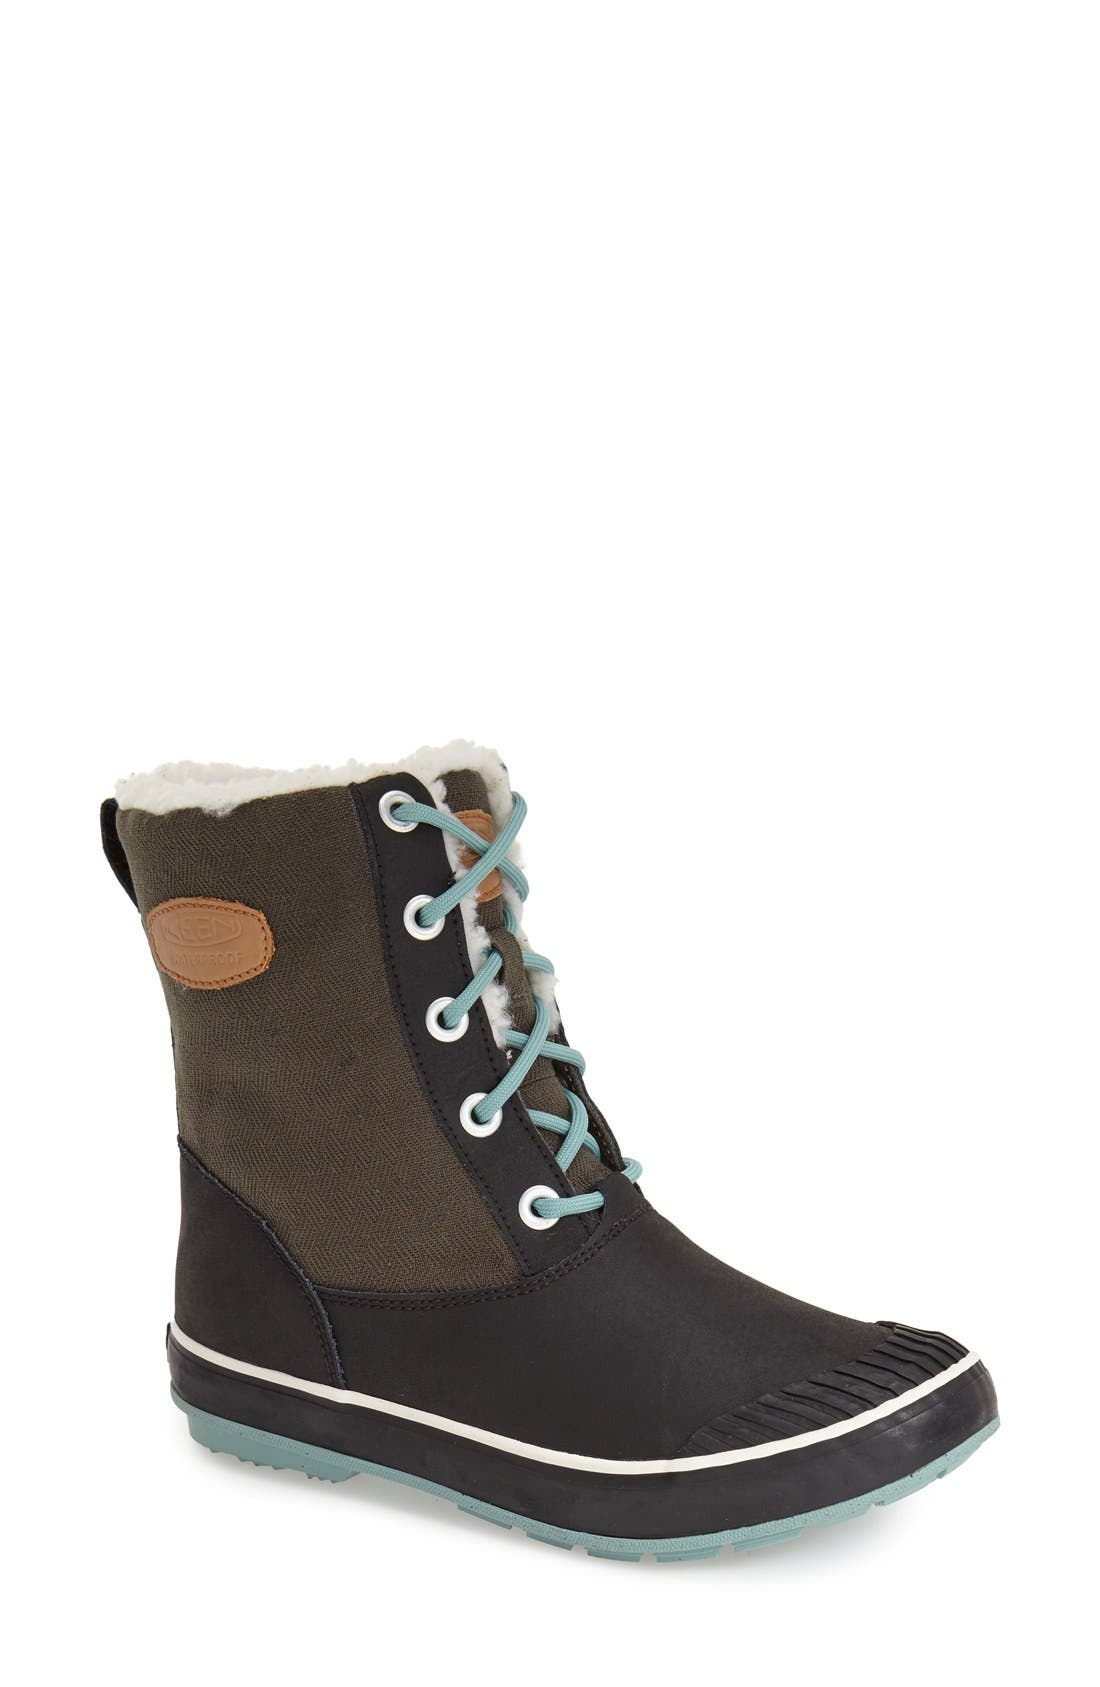 'Elsa' Waterproof Boot,                         Main,                         color, Forset Night